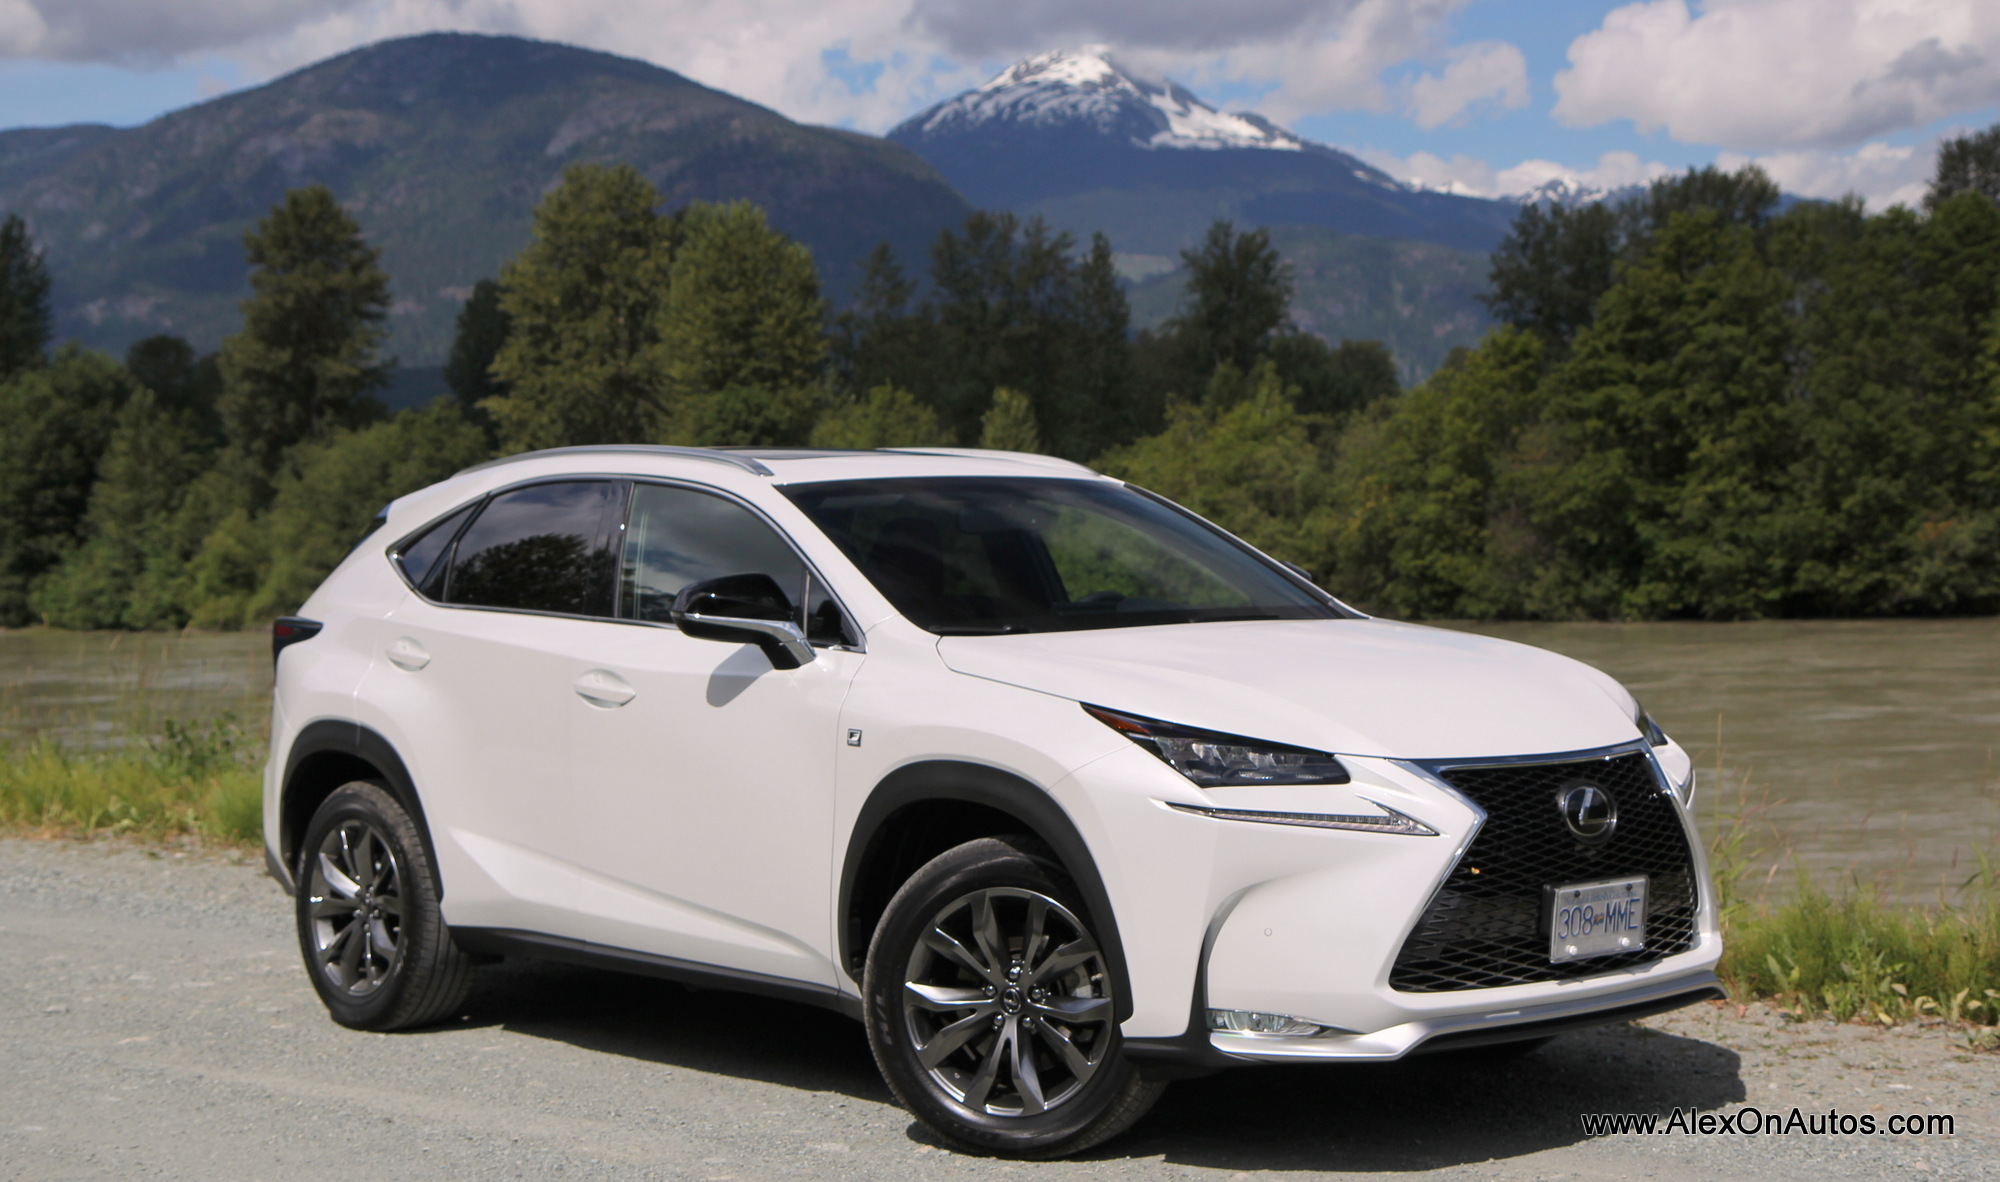 alexonautos review 2015 lexus nx 200t and 300h riverside green. Black Bedroom Furniture Sets. Home Design Ideas